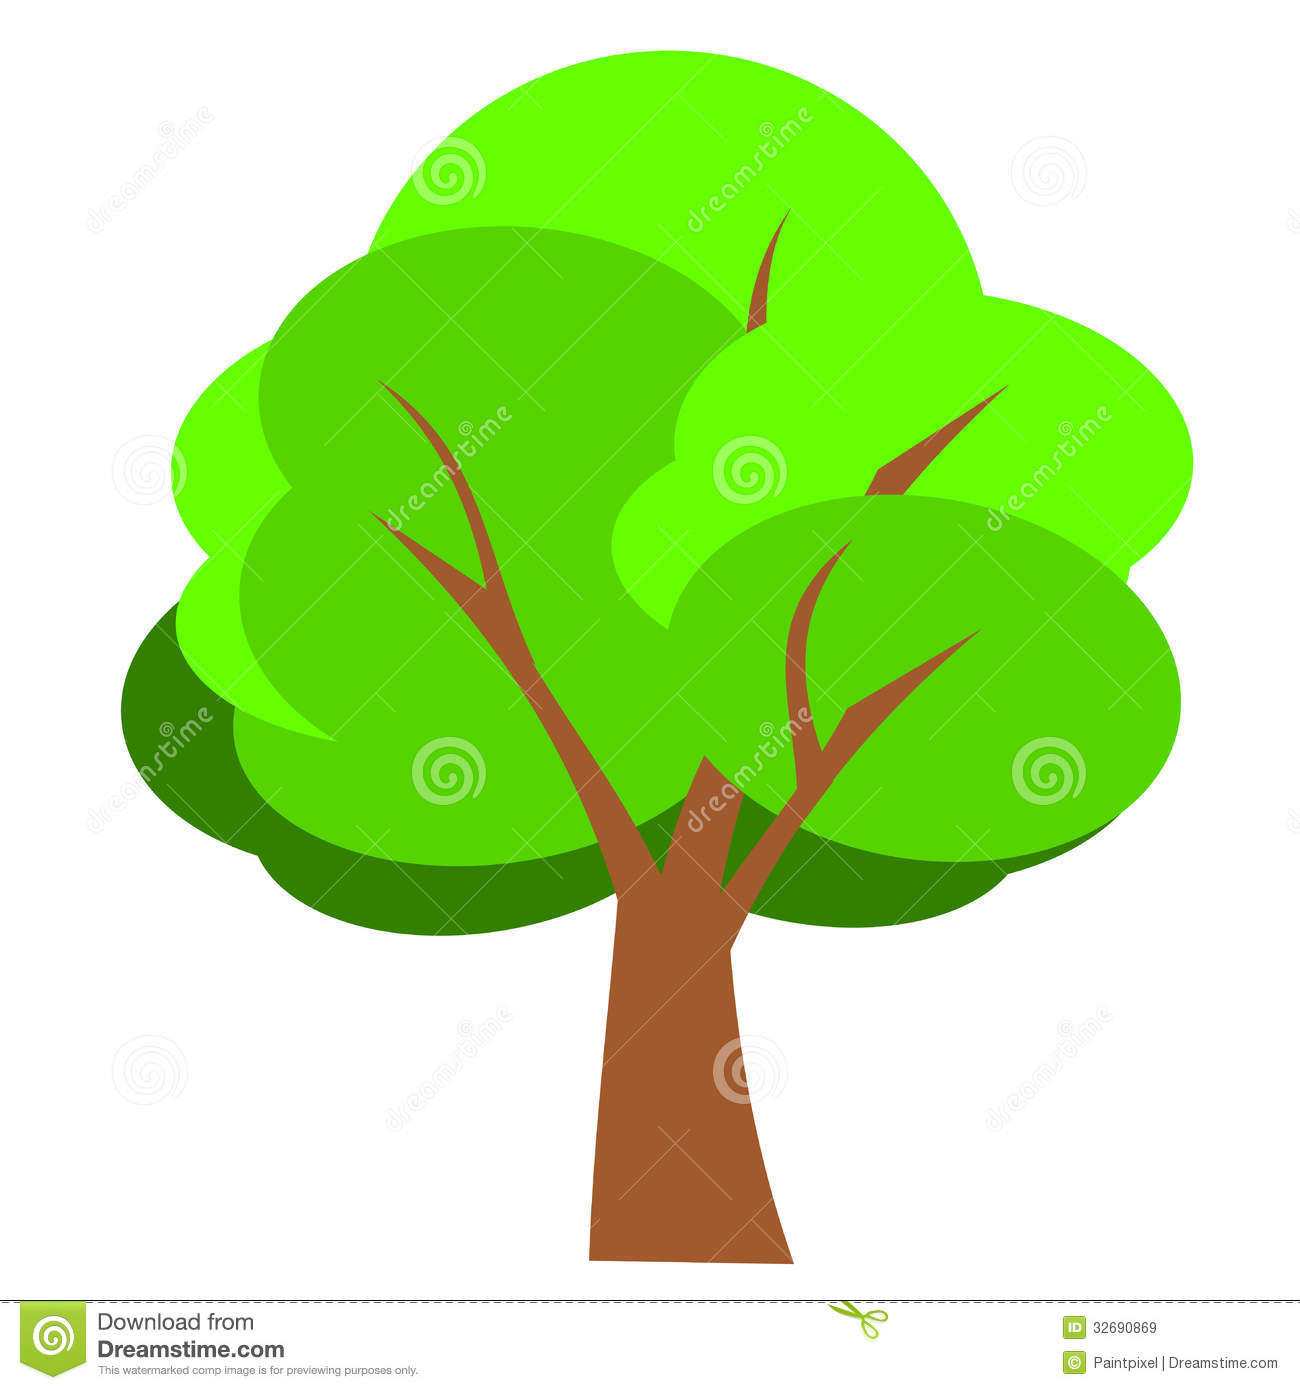 Suggestions Online | Images of Maple Tree Clip Art